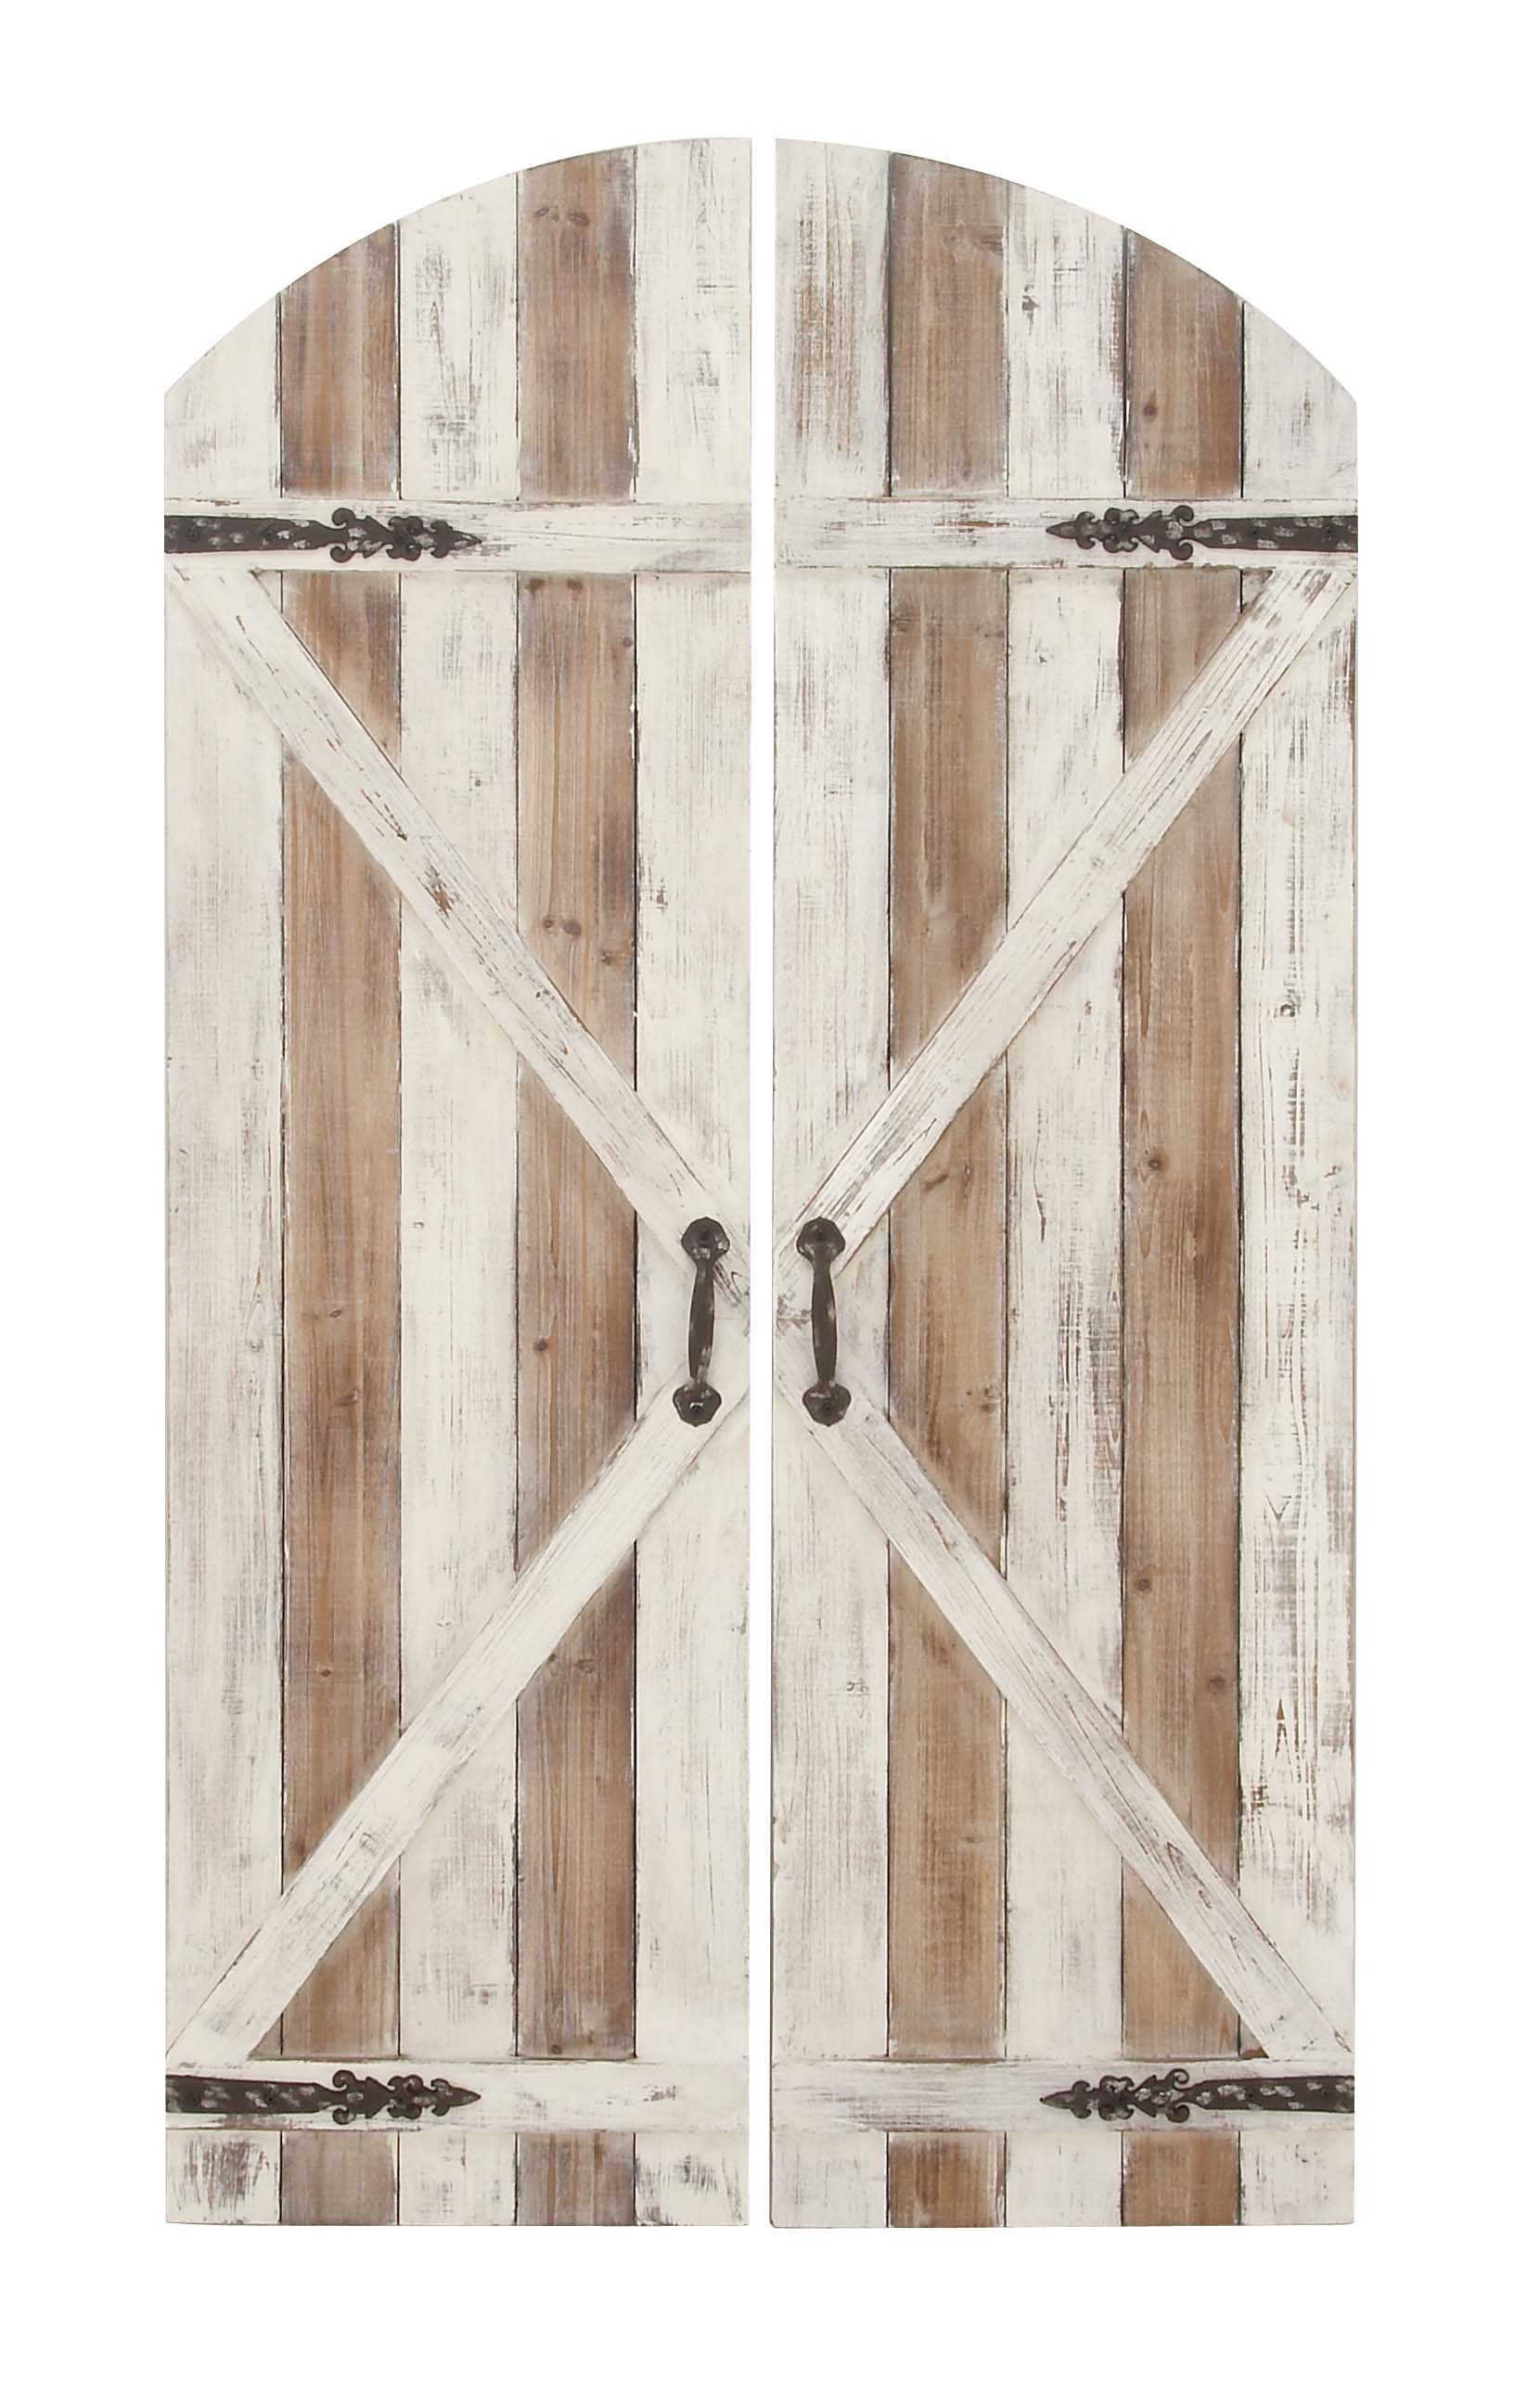 Decmode Set of 2 Farmhouse 59 X 34 Inch Slatted Fir Wood and Iron Arched Top Barn Door Wall Plaque, Brown by DecMode